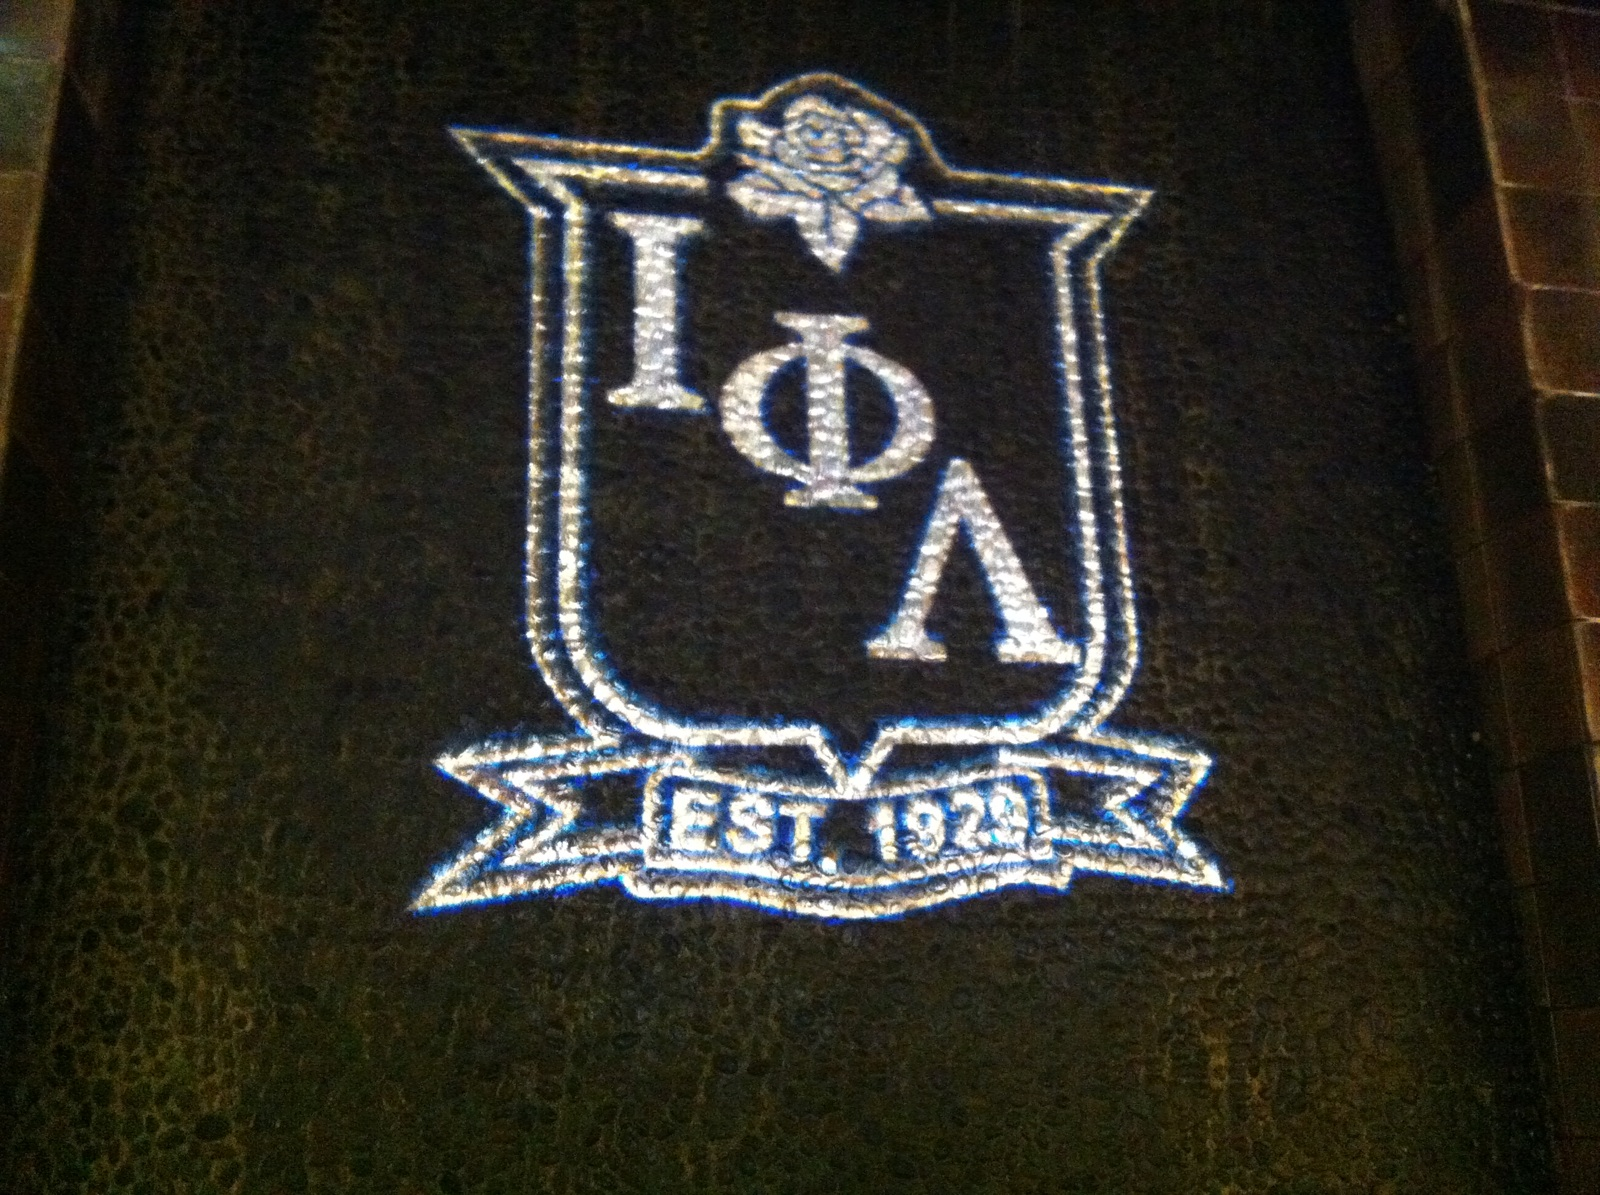 Iota Phi Lambda Sorority, Inc.